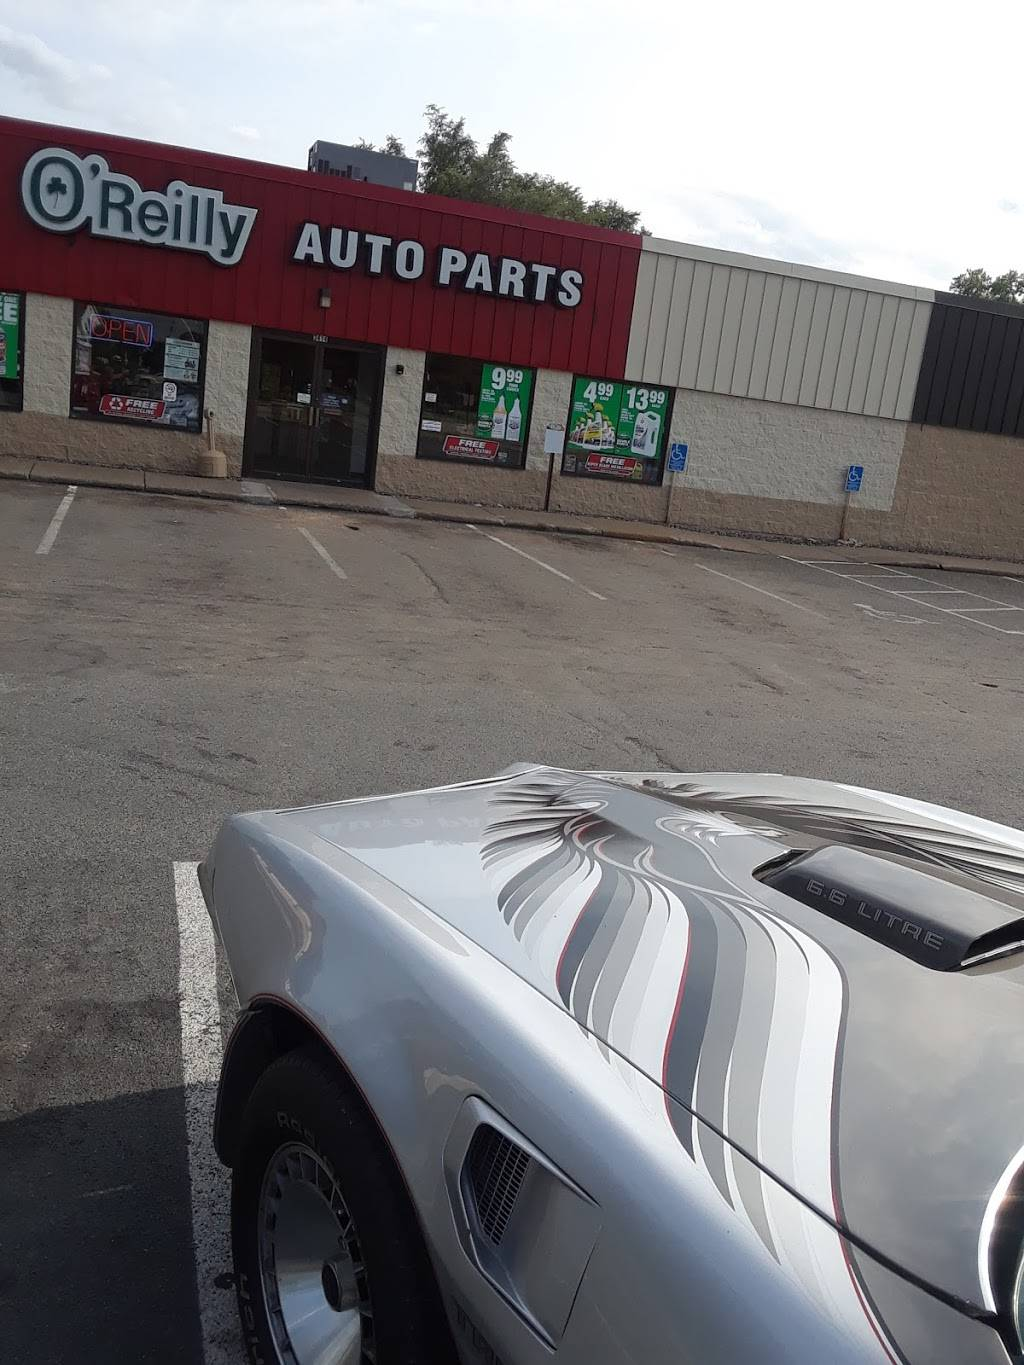 OReilly Auto Parts - electronics store  | Photo 6 of 8 | Address: 3414 Bunker Lake Blvd, Andover, MN 55304, USA | Phone: (763) 421-2127